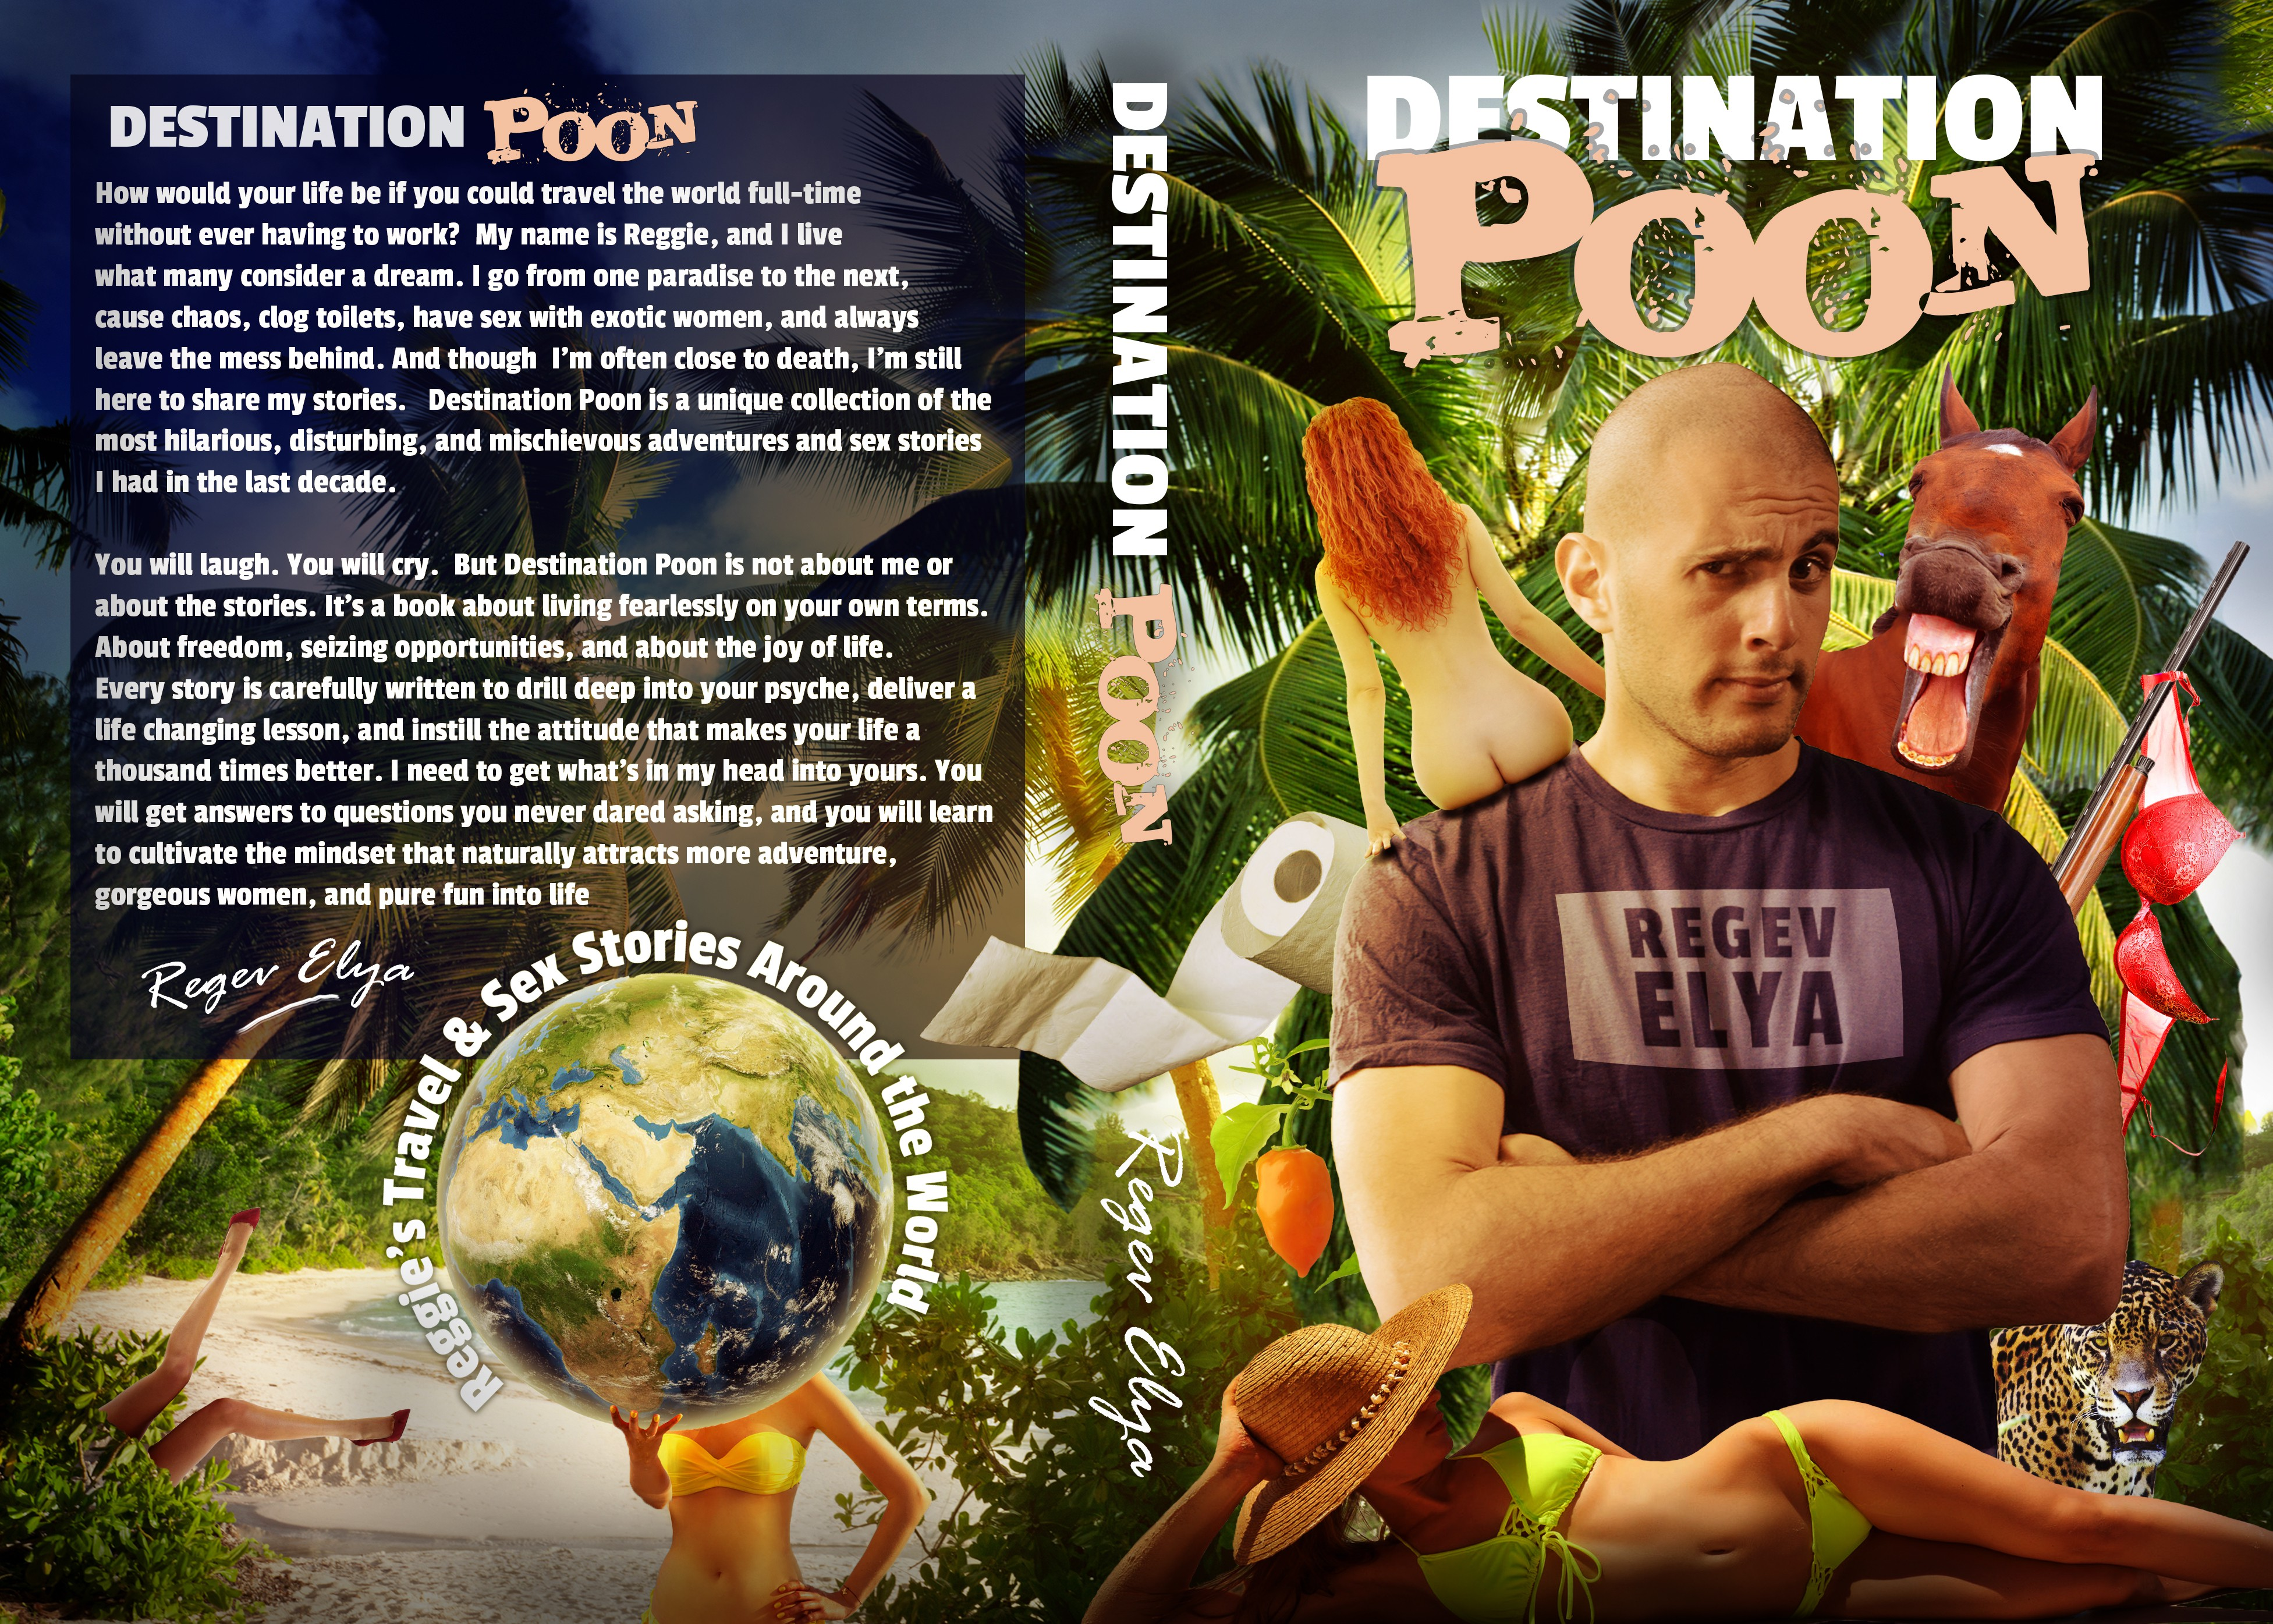 Get Fame & Glory by becoming Destination Poon's designer